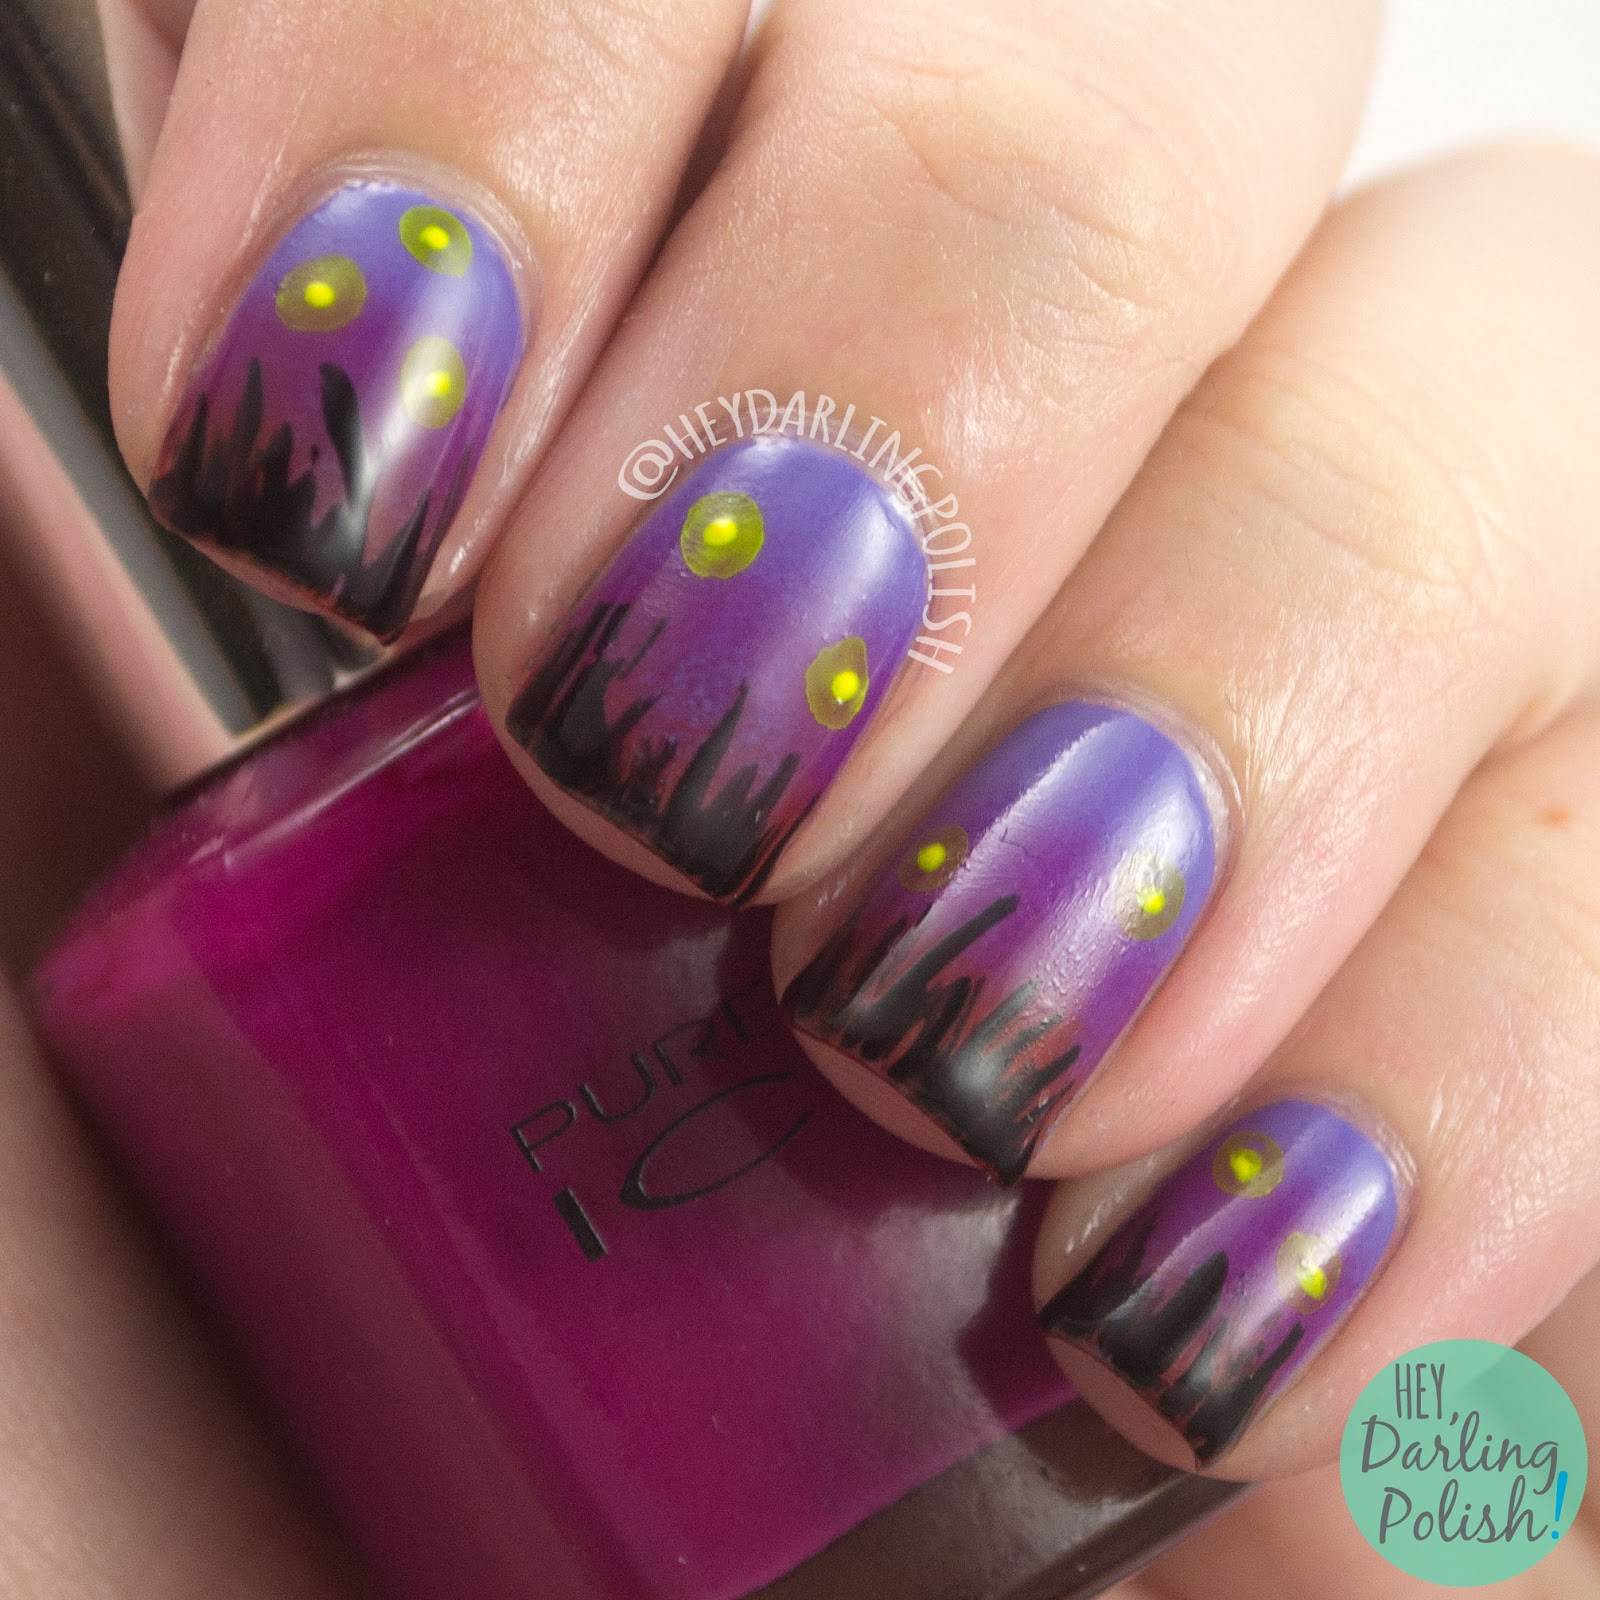 nails, nail art, nail polish, gradient, sunset, fireflies, hey darling polish, 52 week challenge, free hand